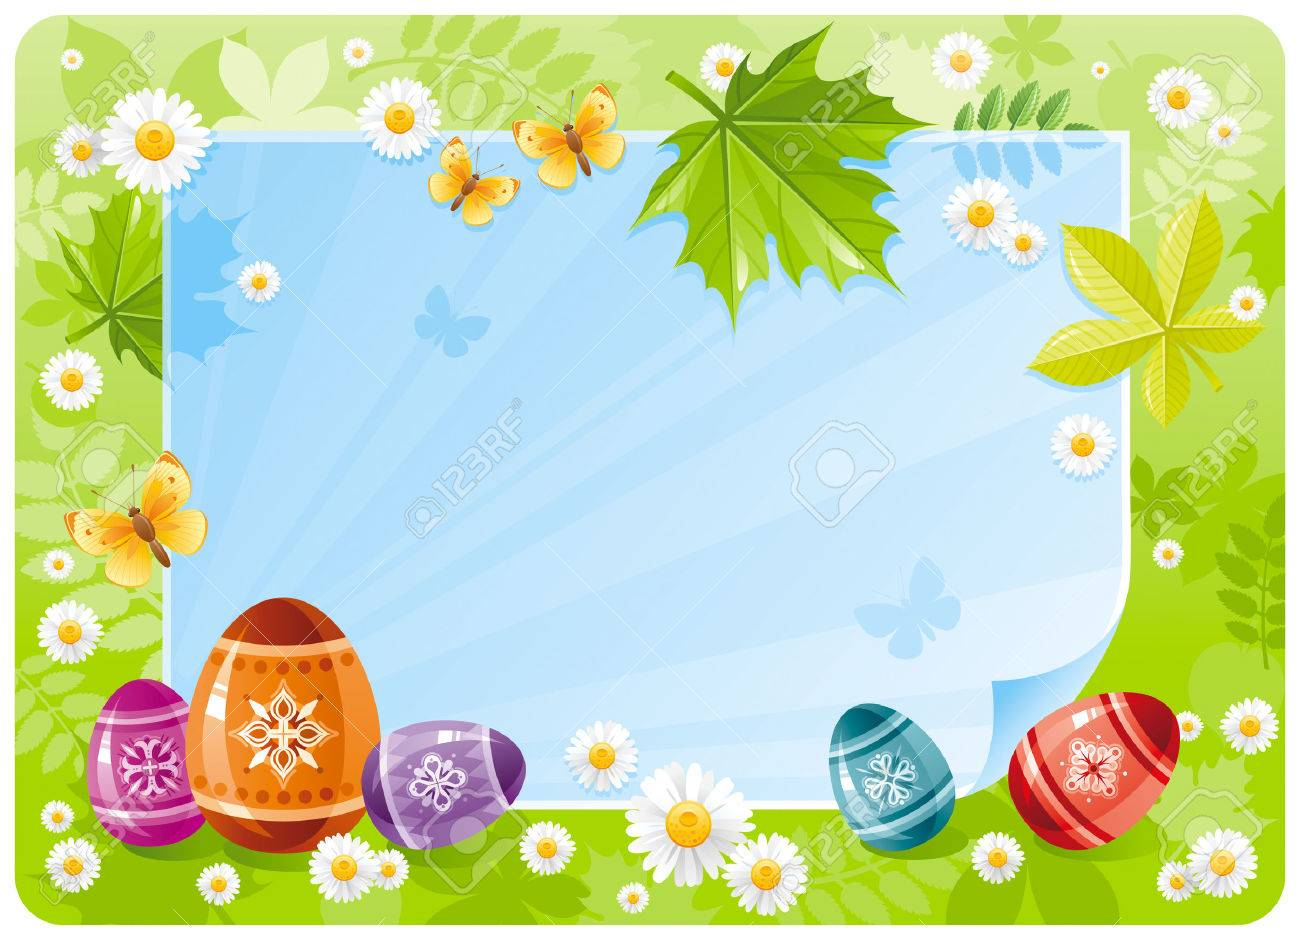 Happy Easter Banner Border Spring Scene Green Grass Blue Sky Rainbow Egg